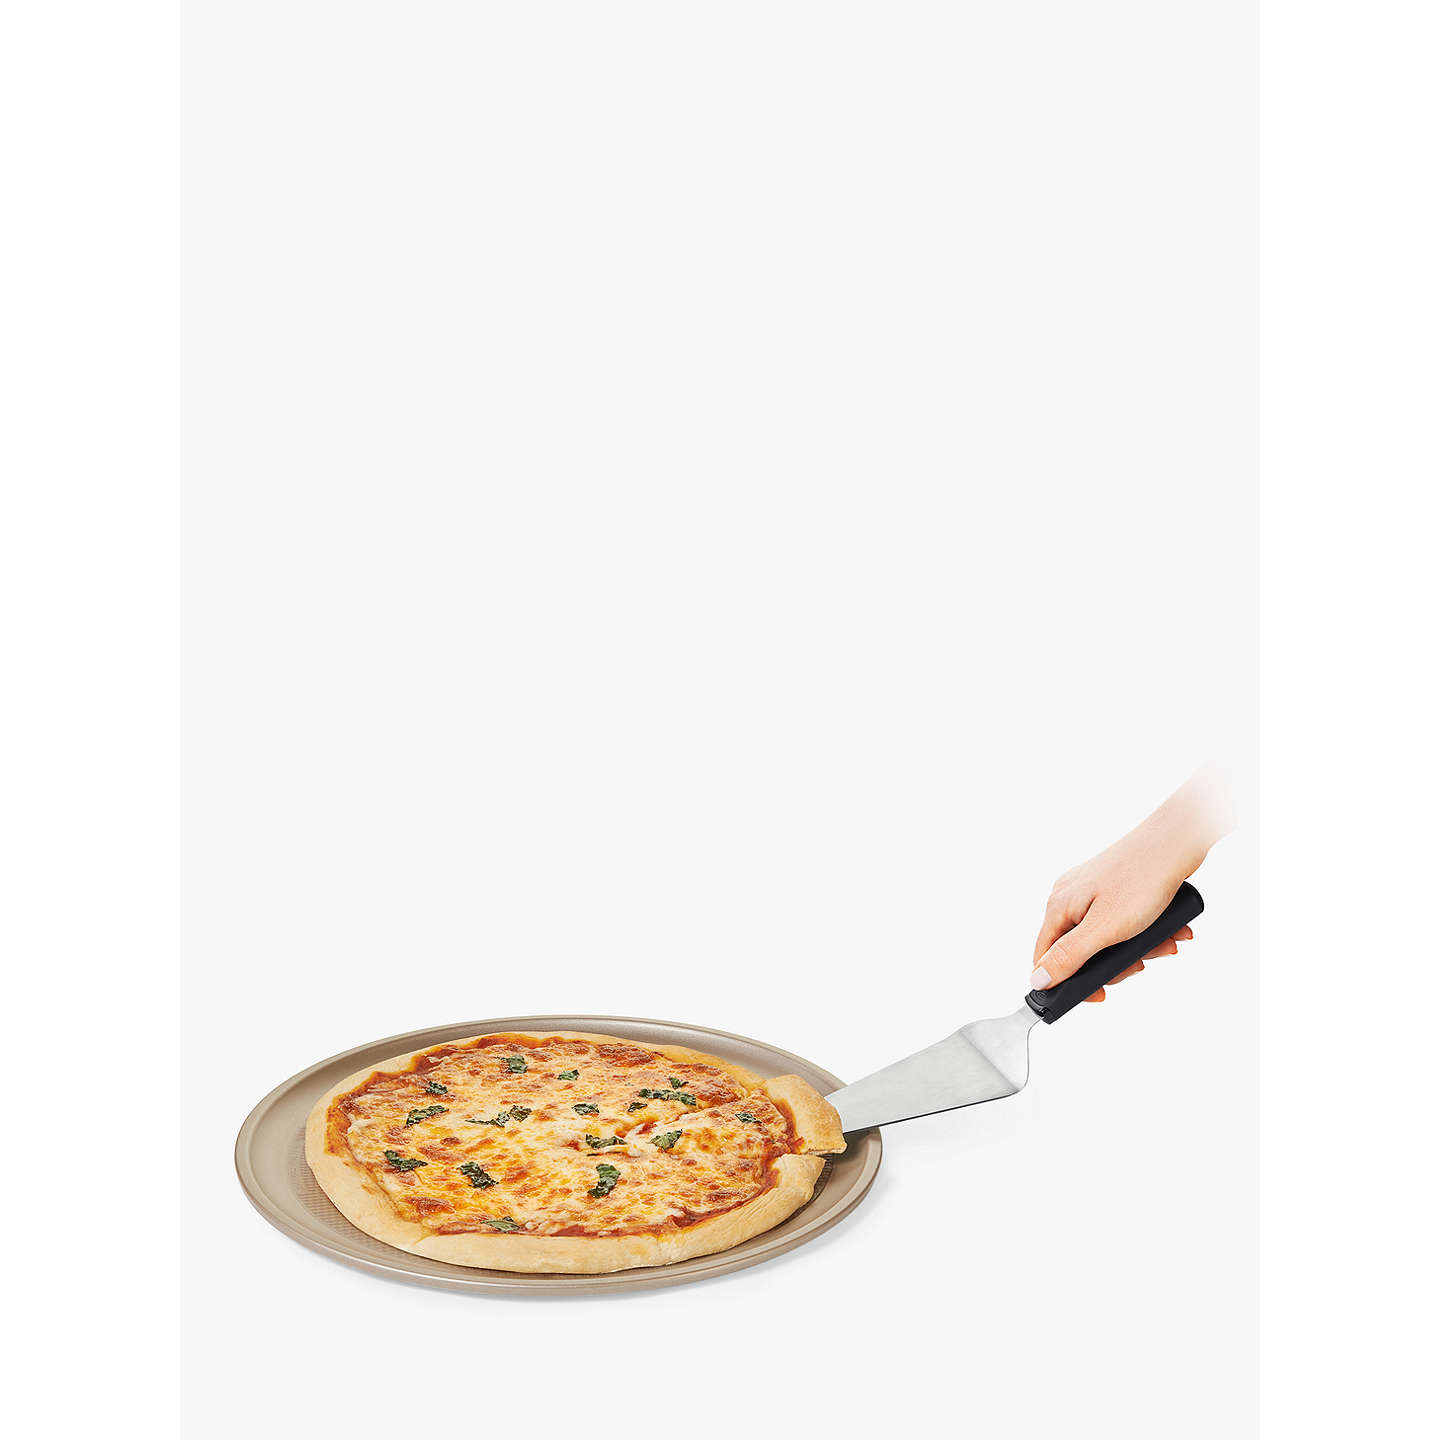 BuyOXO Good Grips Stainless Steel Pizza Slicer Online at johnlewis.com